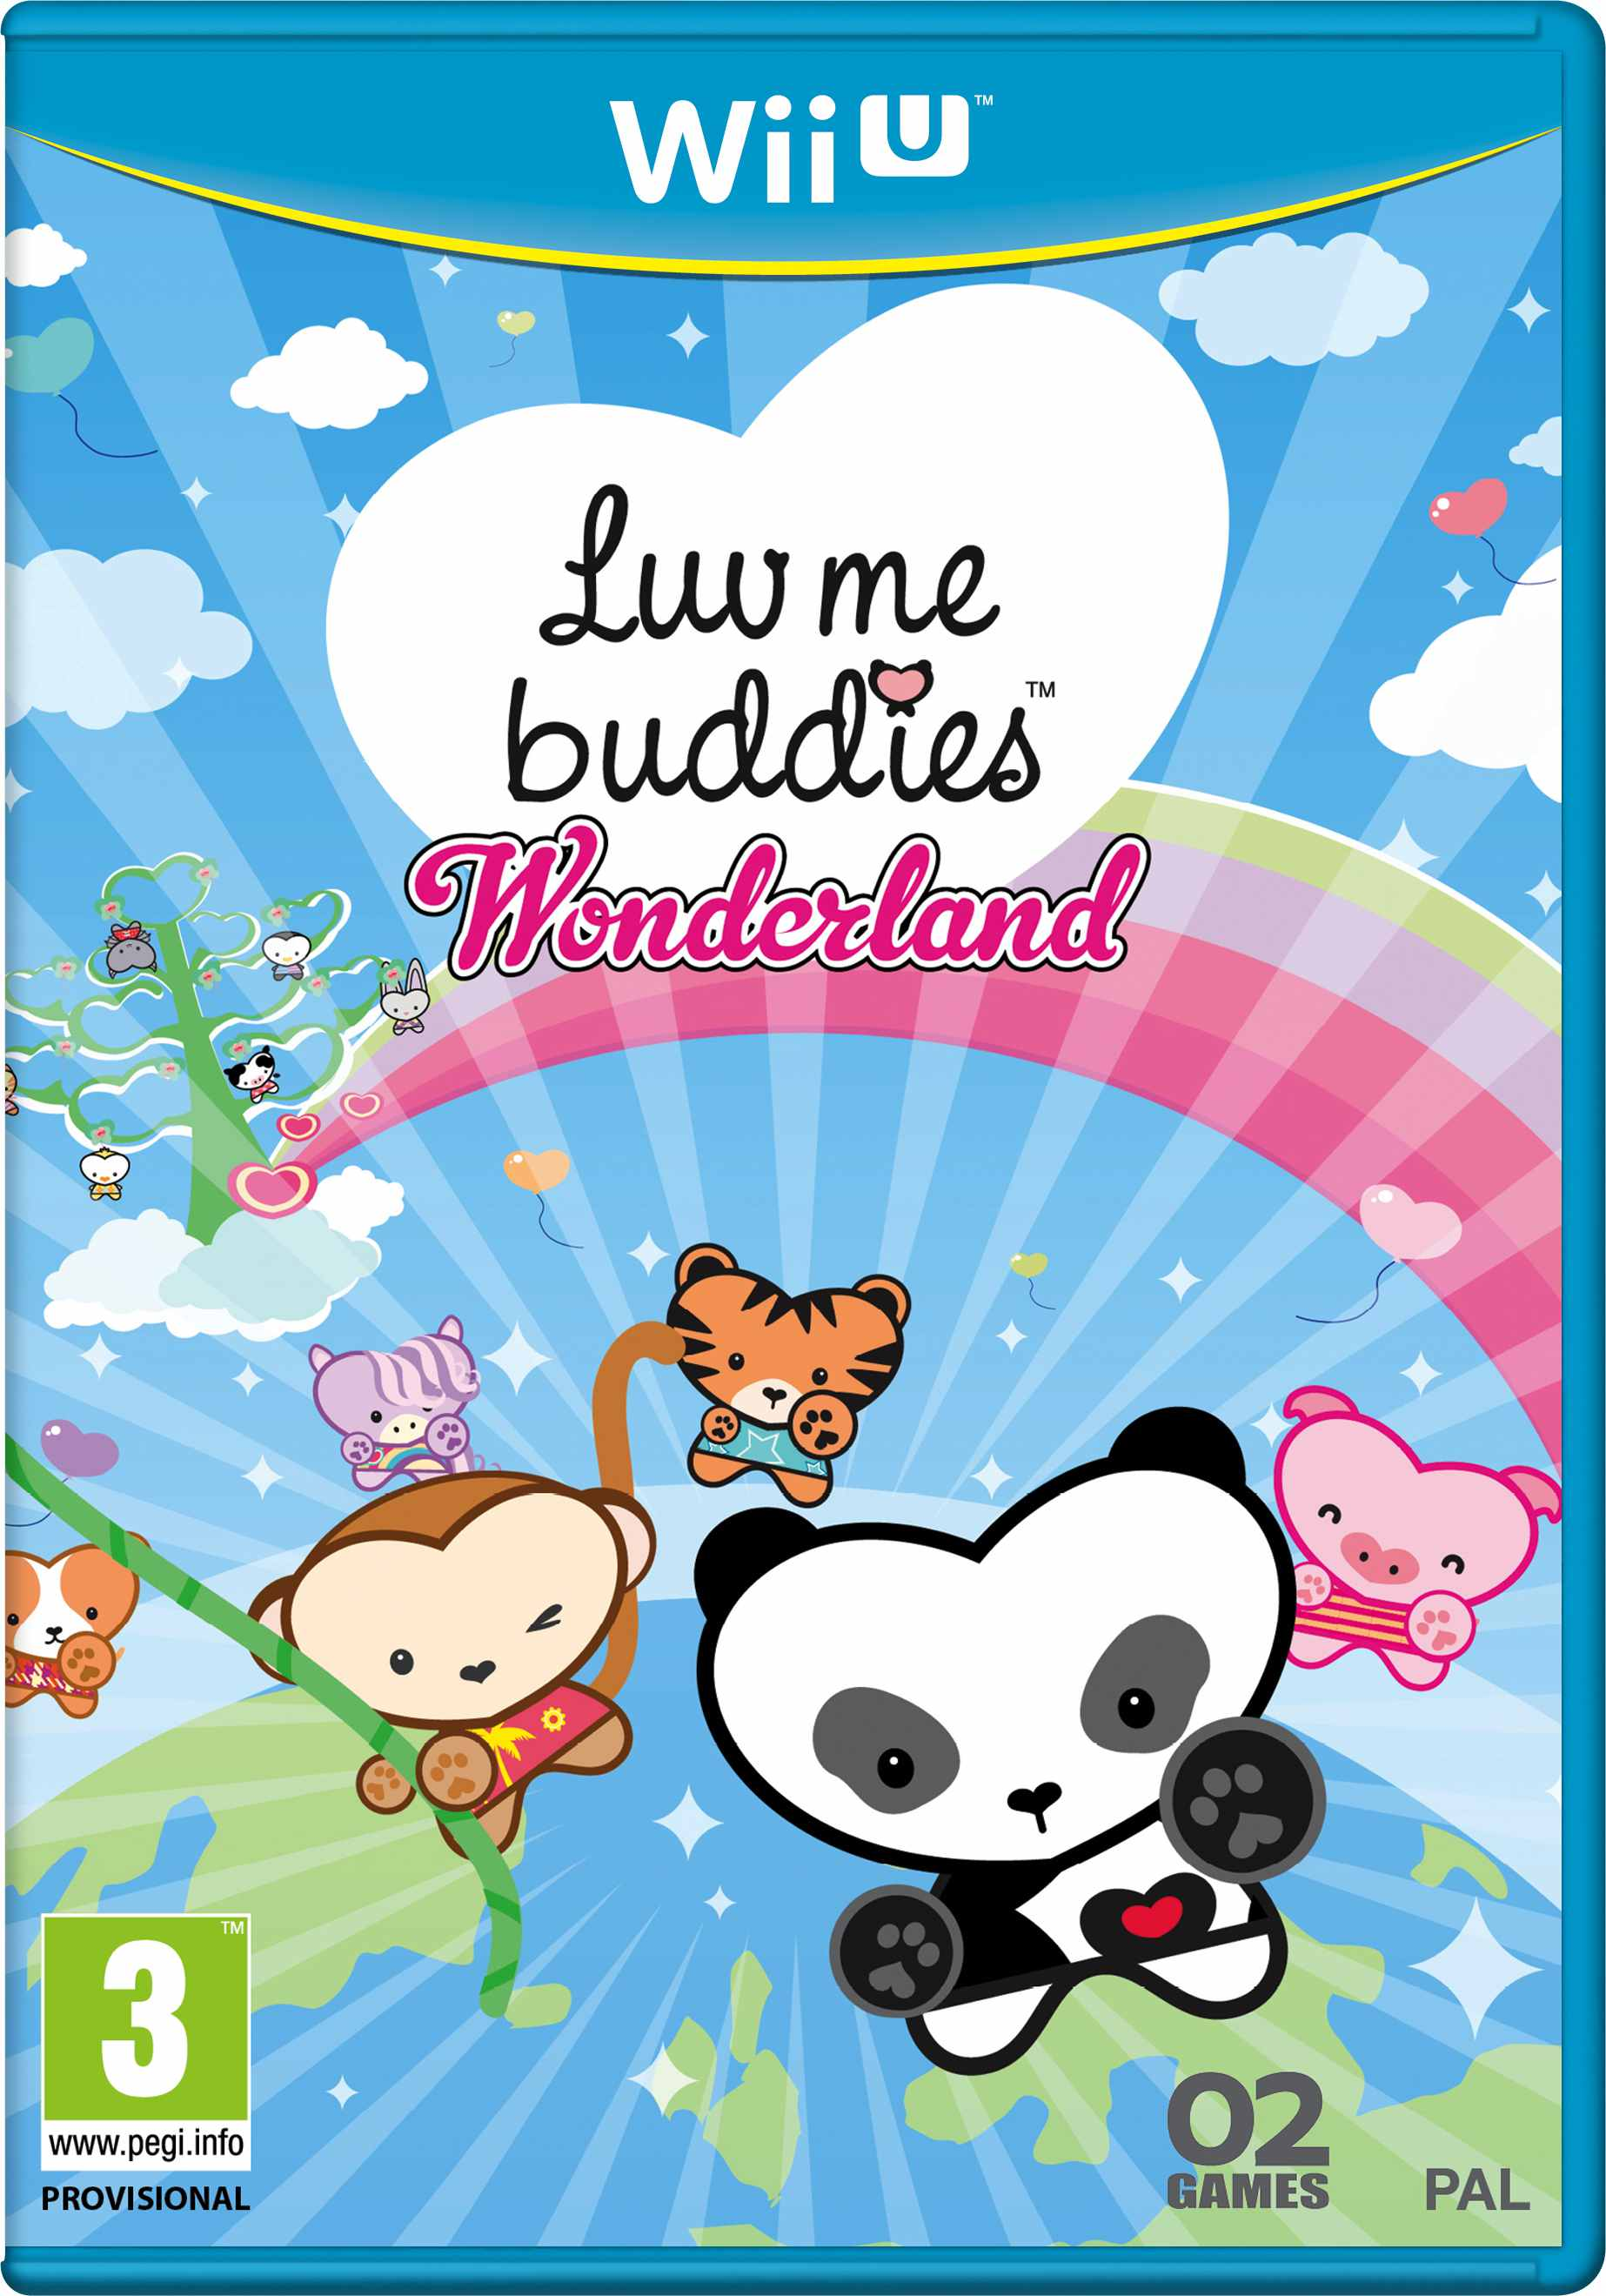 Ver Luv Me Buddies Wonderland Wii U